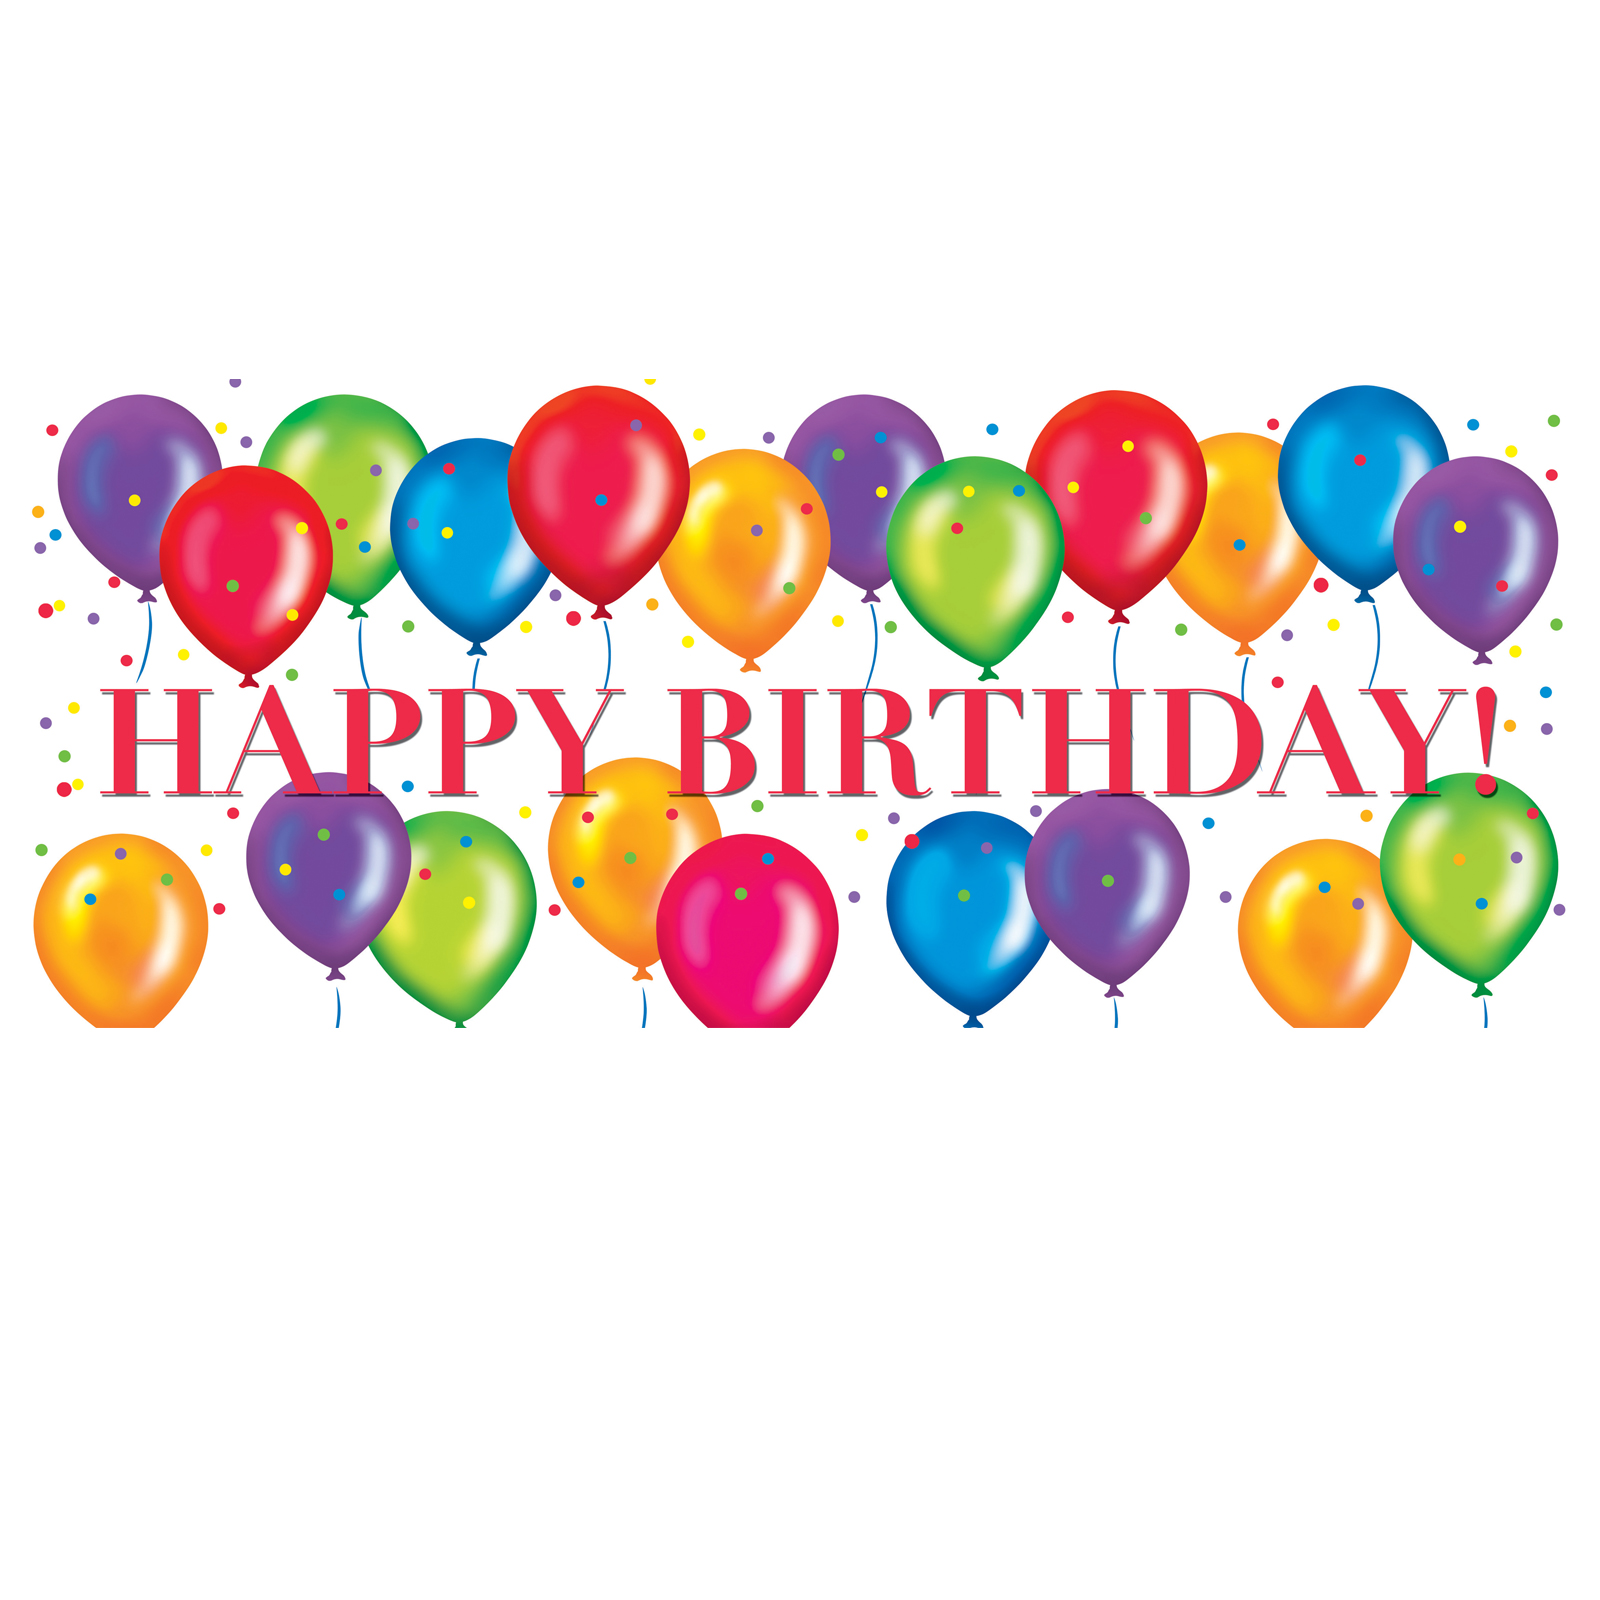 free clipart birthday wishes #1